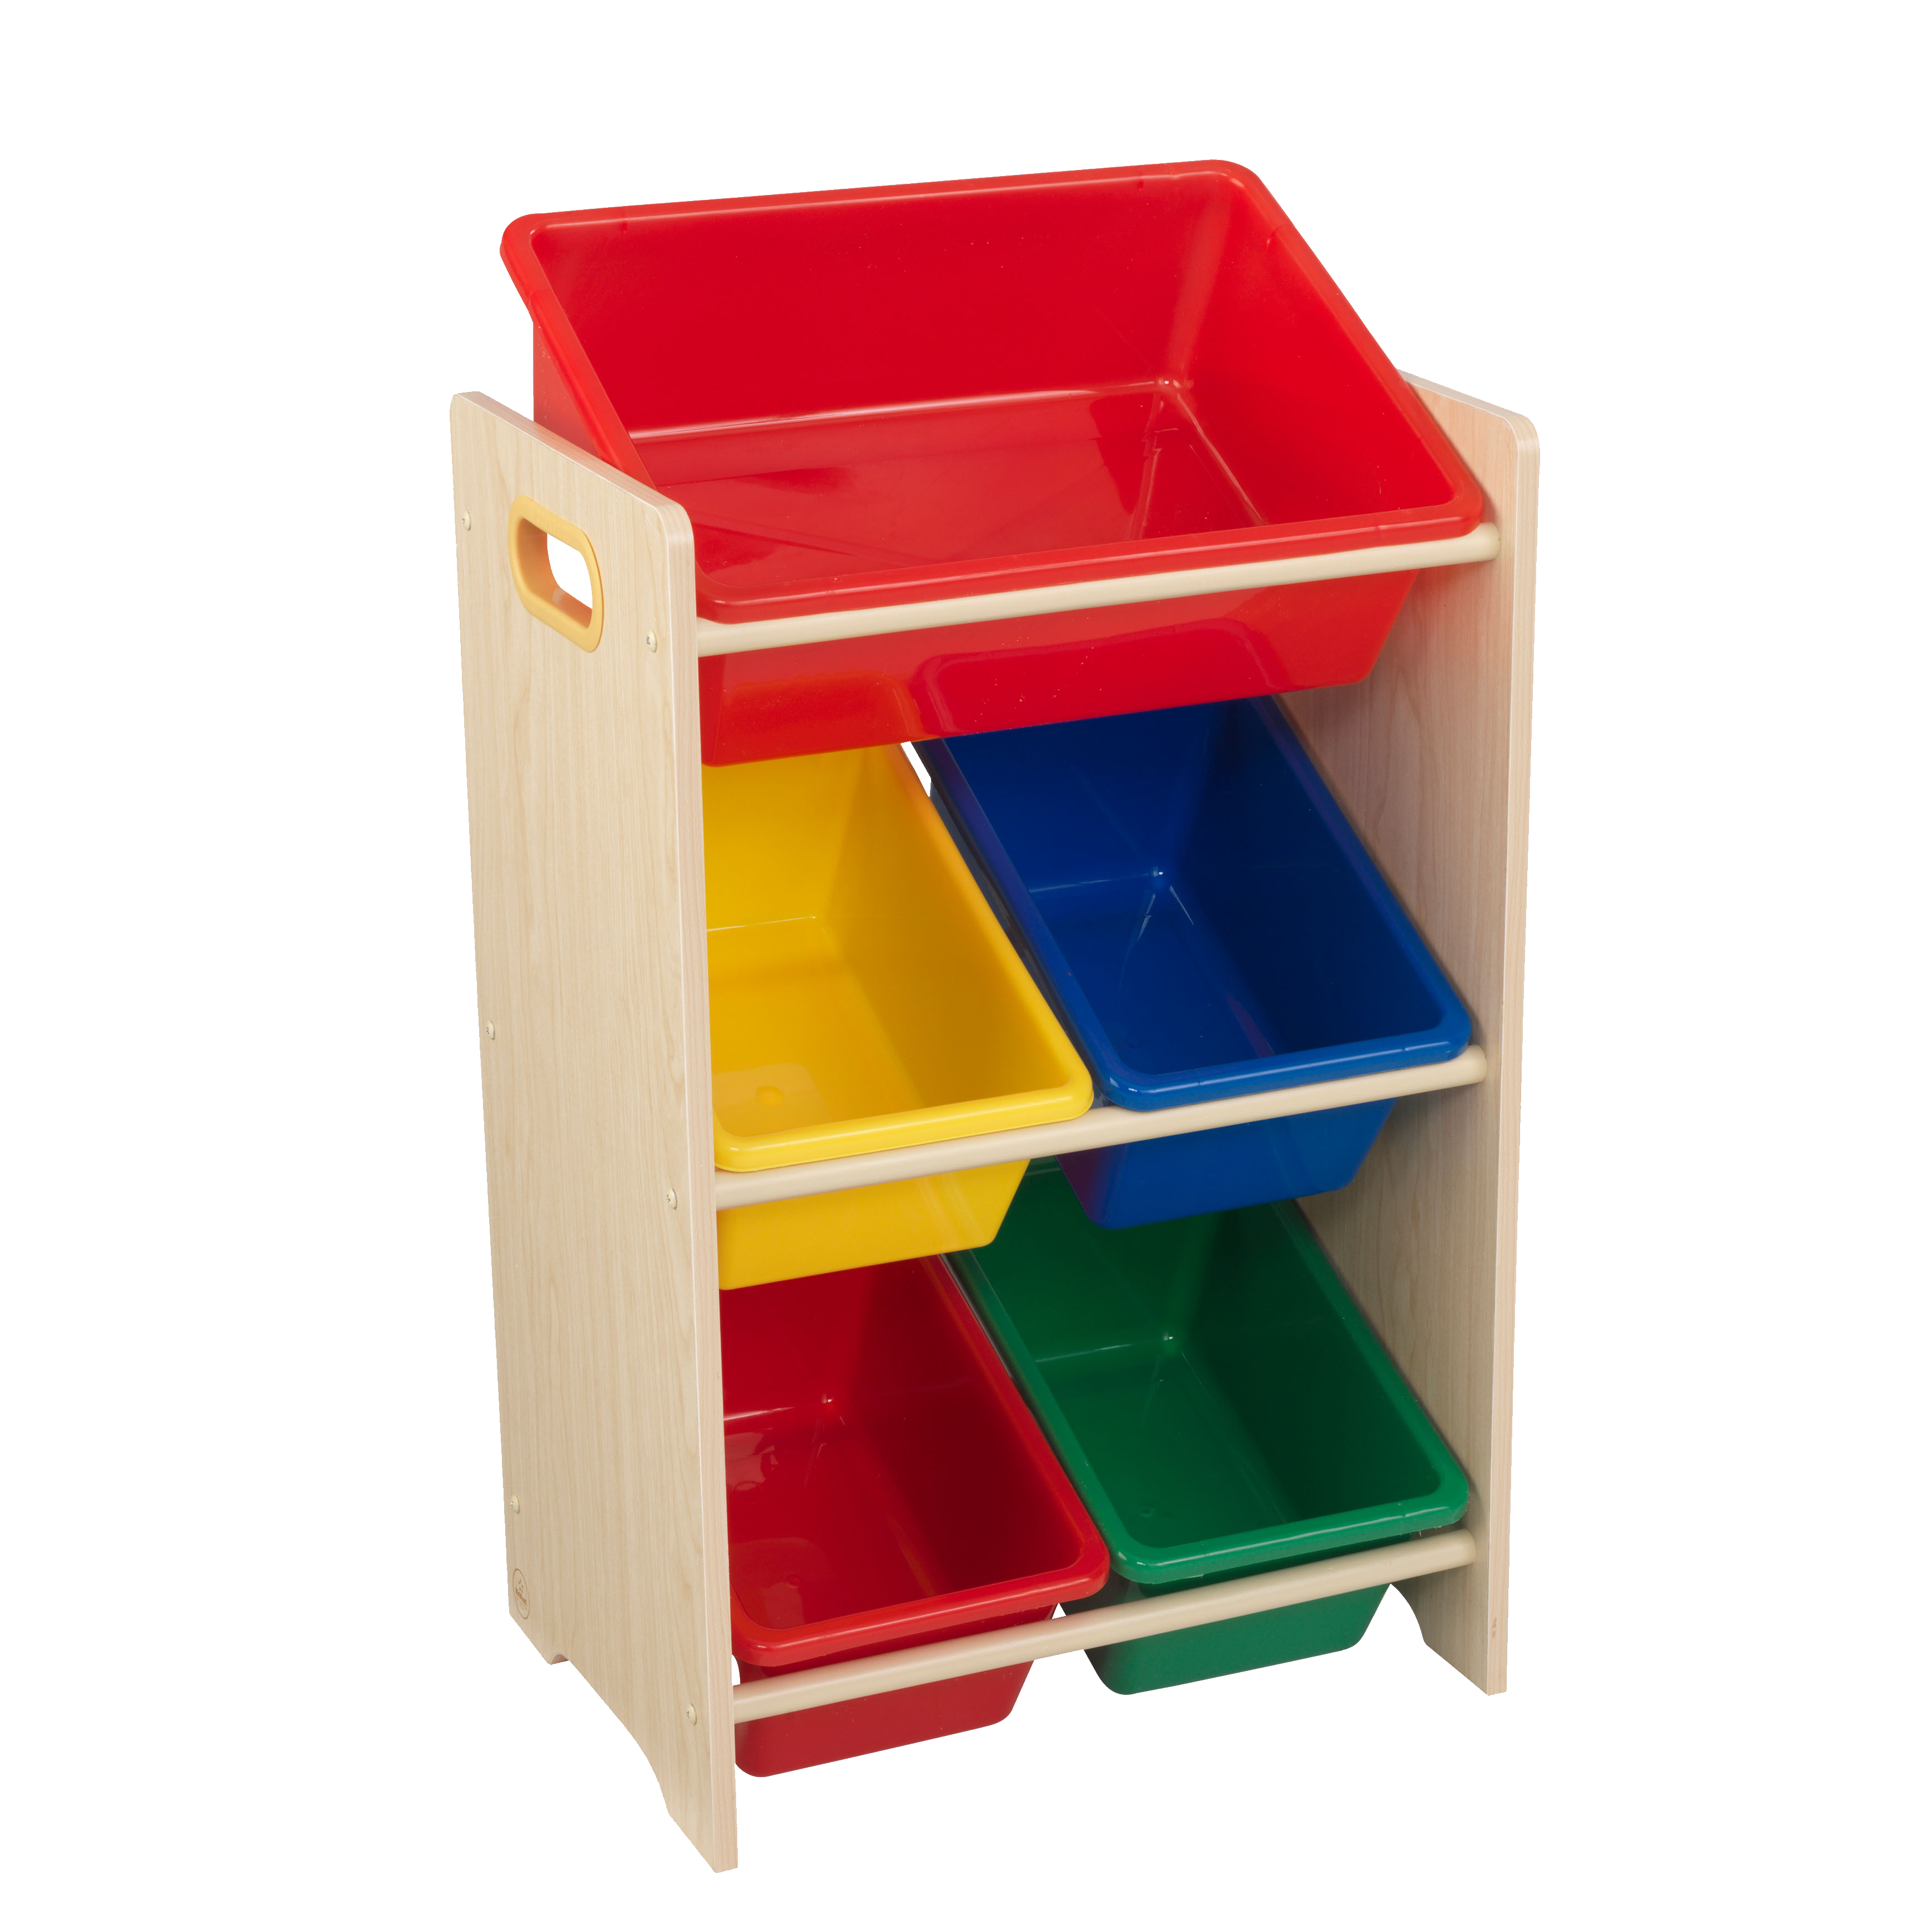 Kidkraft Wooden Childrens Toy Storage Unit With Five Plastic Bins pertaining to size 3480 X 3480